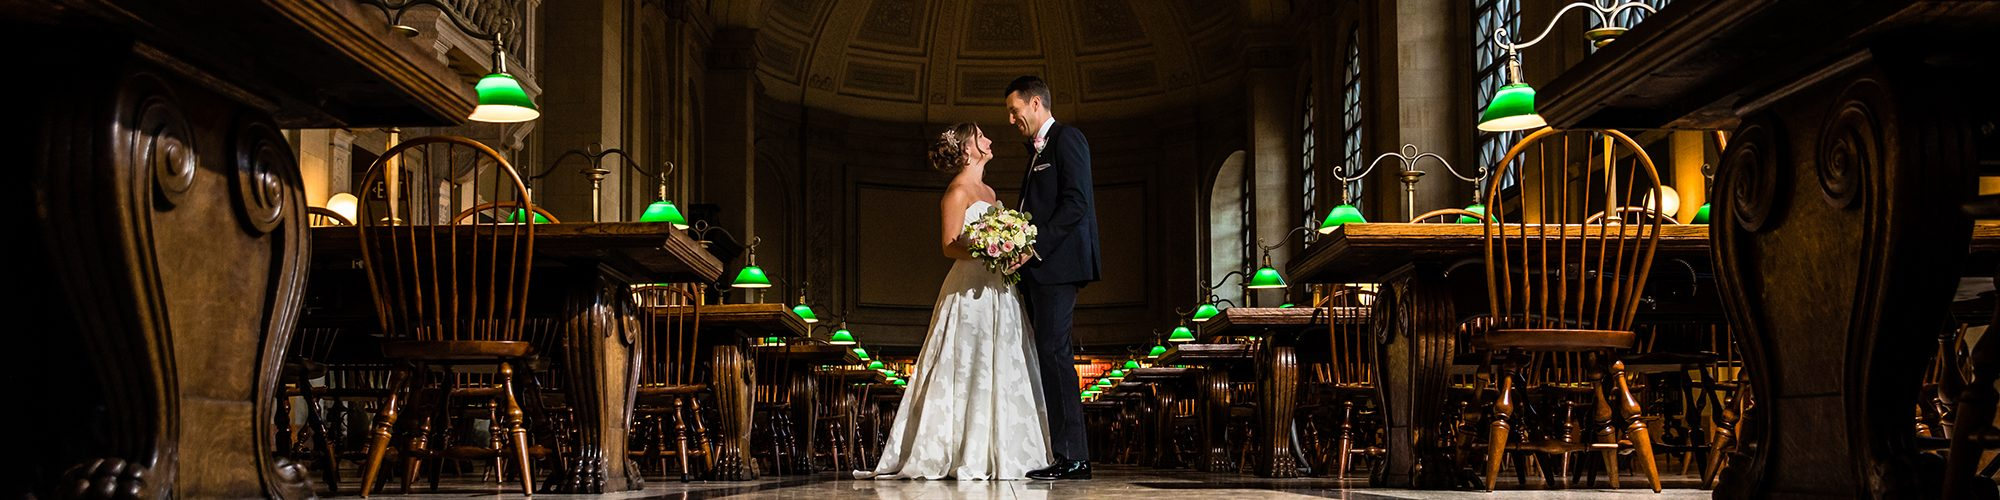 Boston Public Library Wedding.A Boston Public Library Wedding Alex Ian Eric